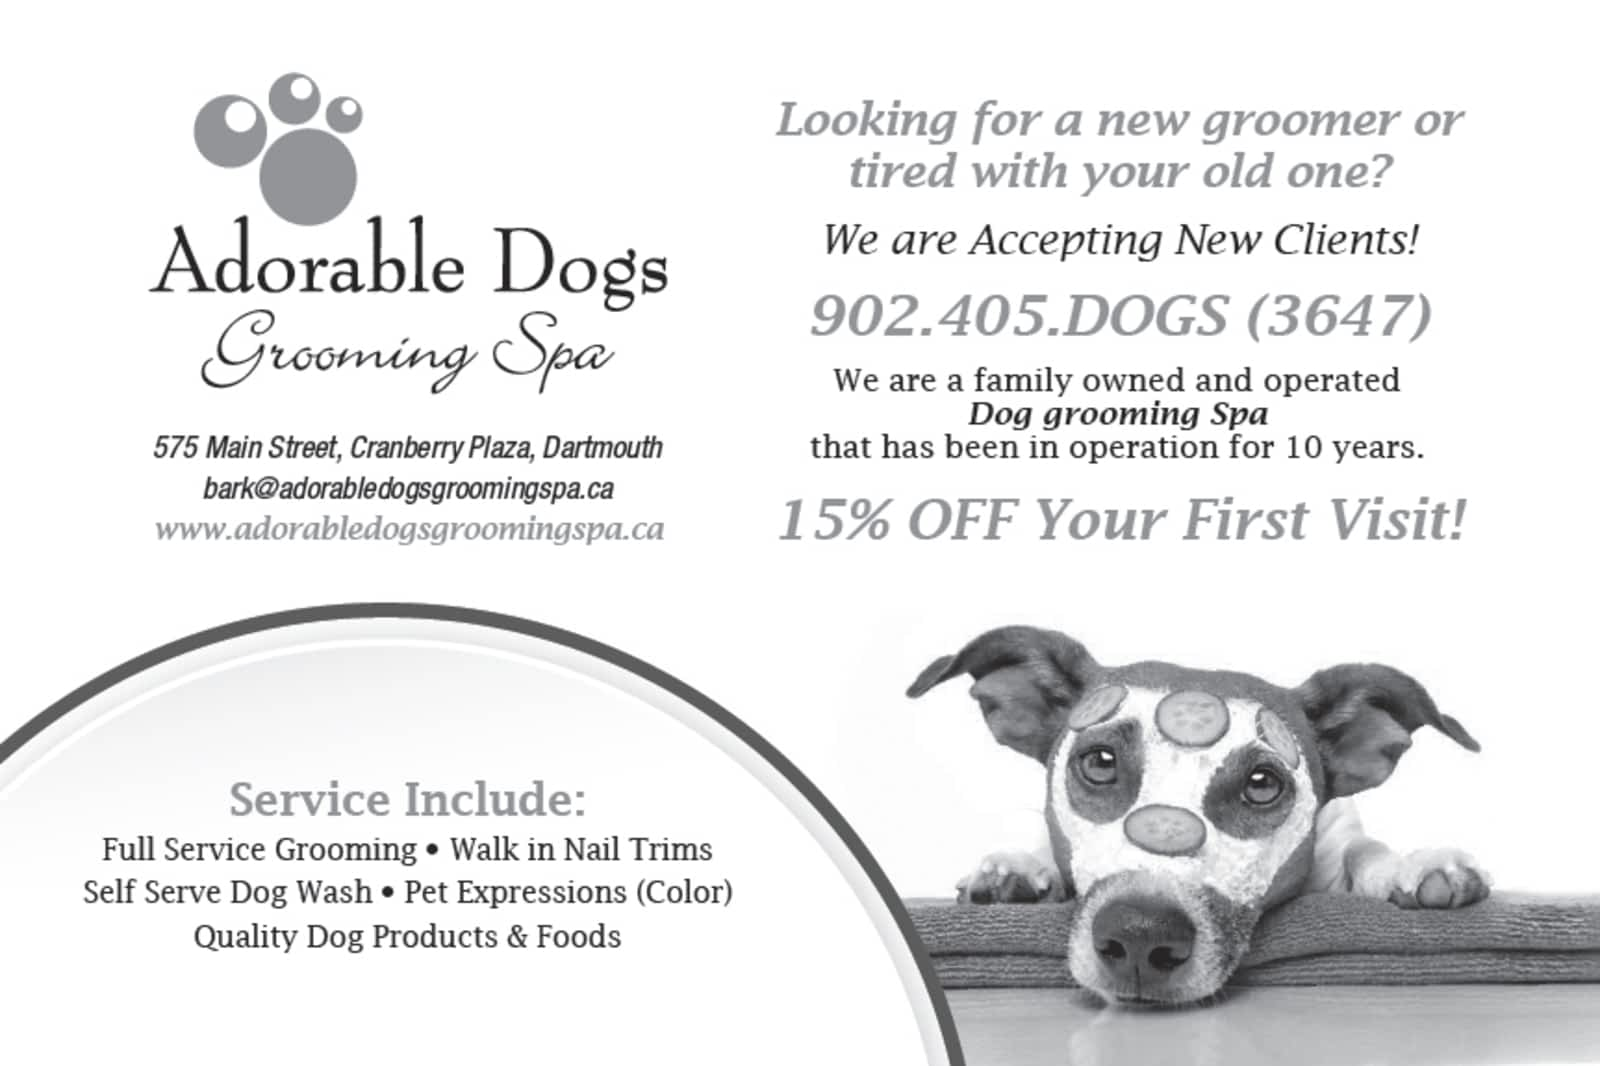 Adorable dogs grooming spa opening hours 575 main st dartmouth ns solutioingenieria Image collections